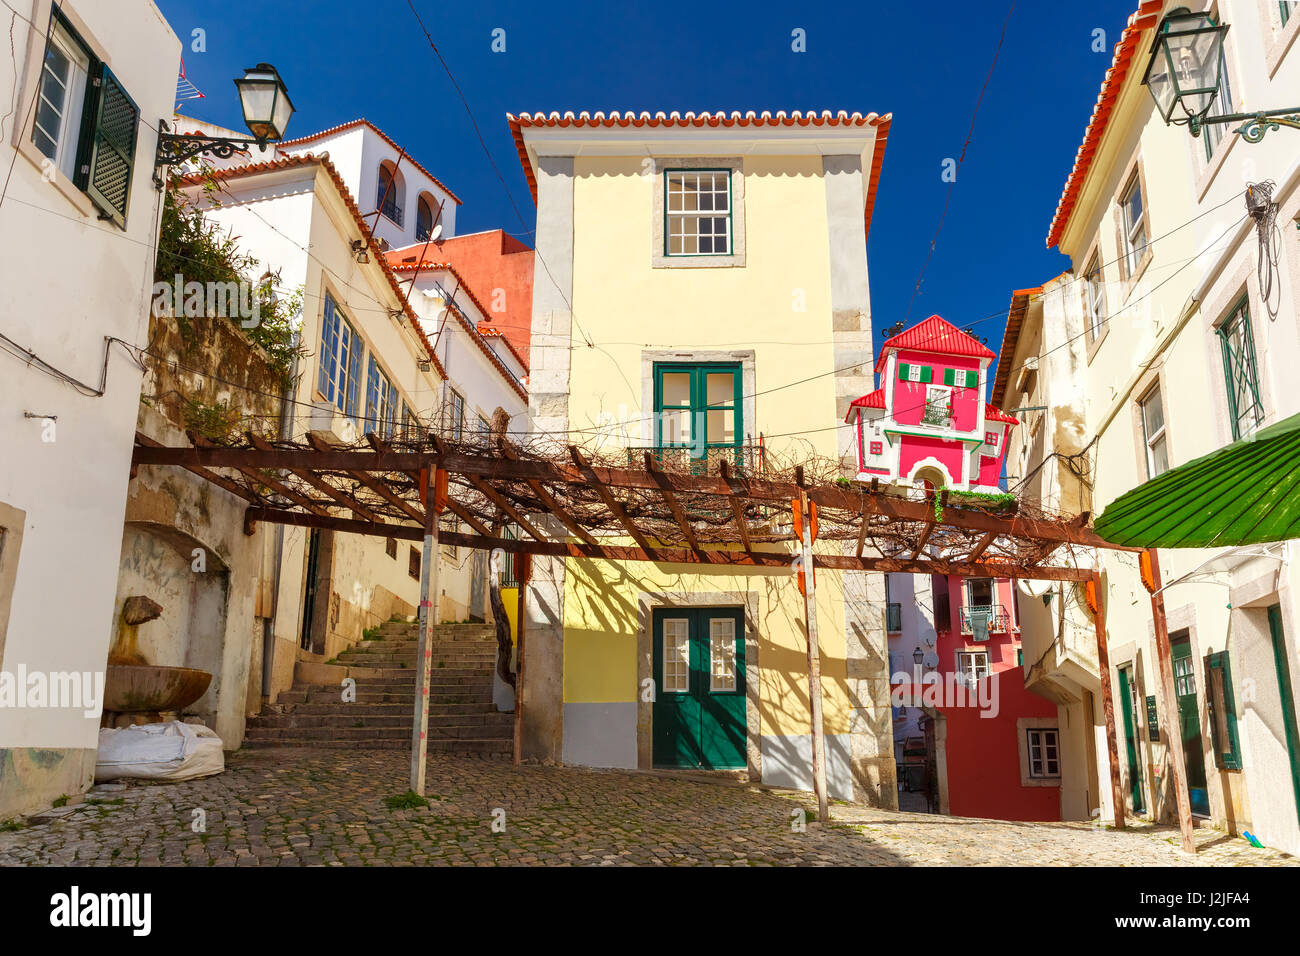 Spring street, typique de Lisbonne Portugal Photo Stock